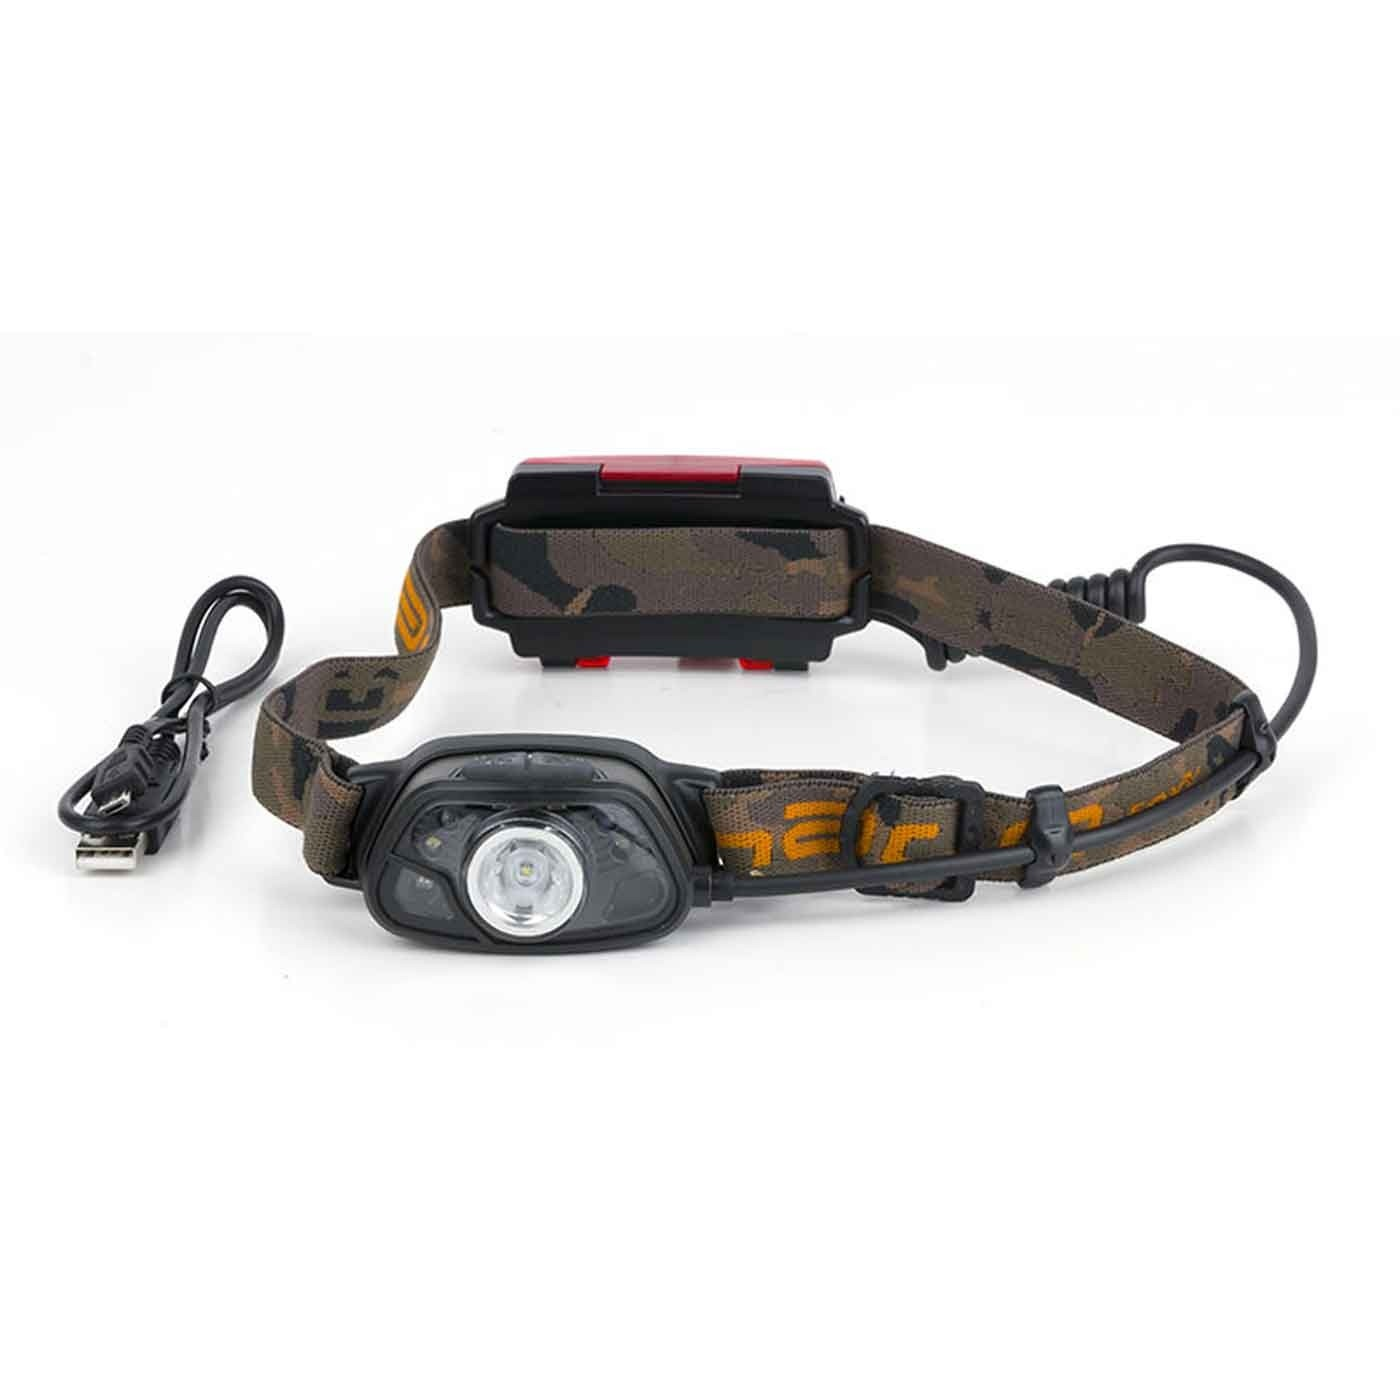 Naglavna Svetilka Fox Headtorch MS 300C